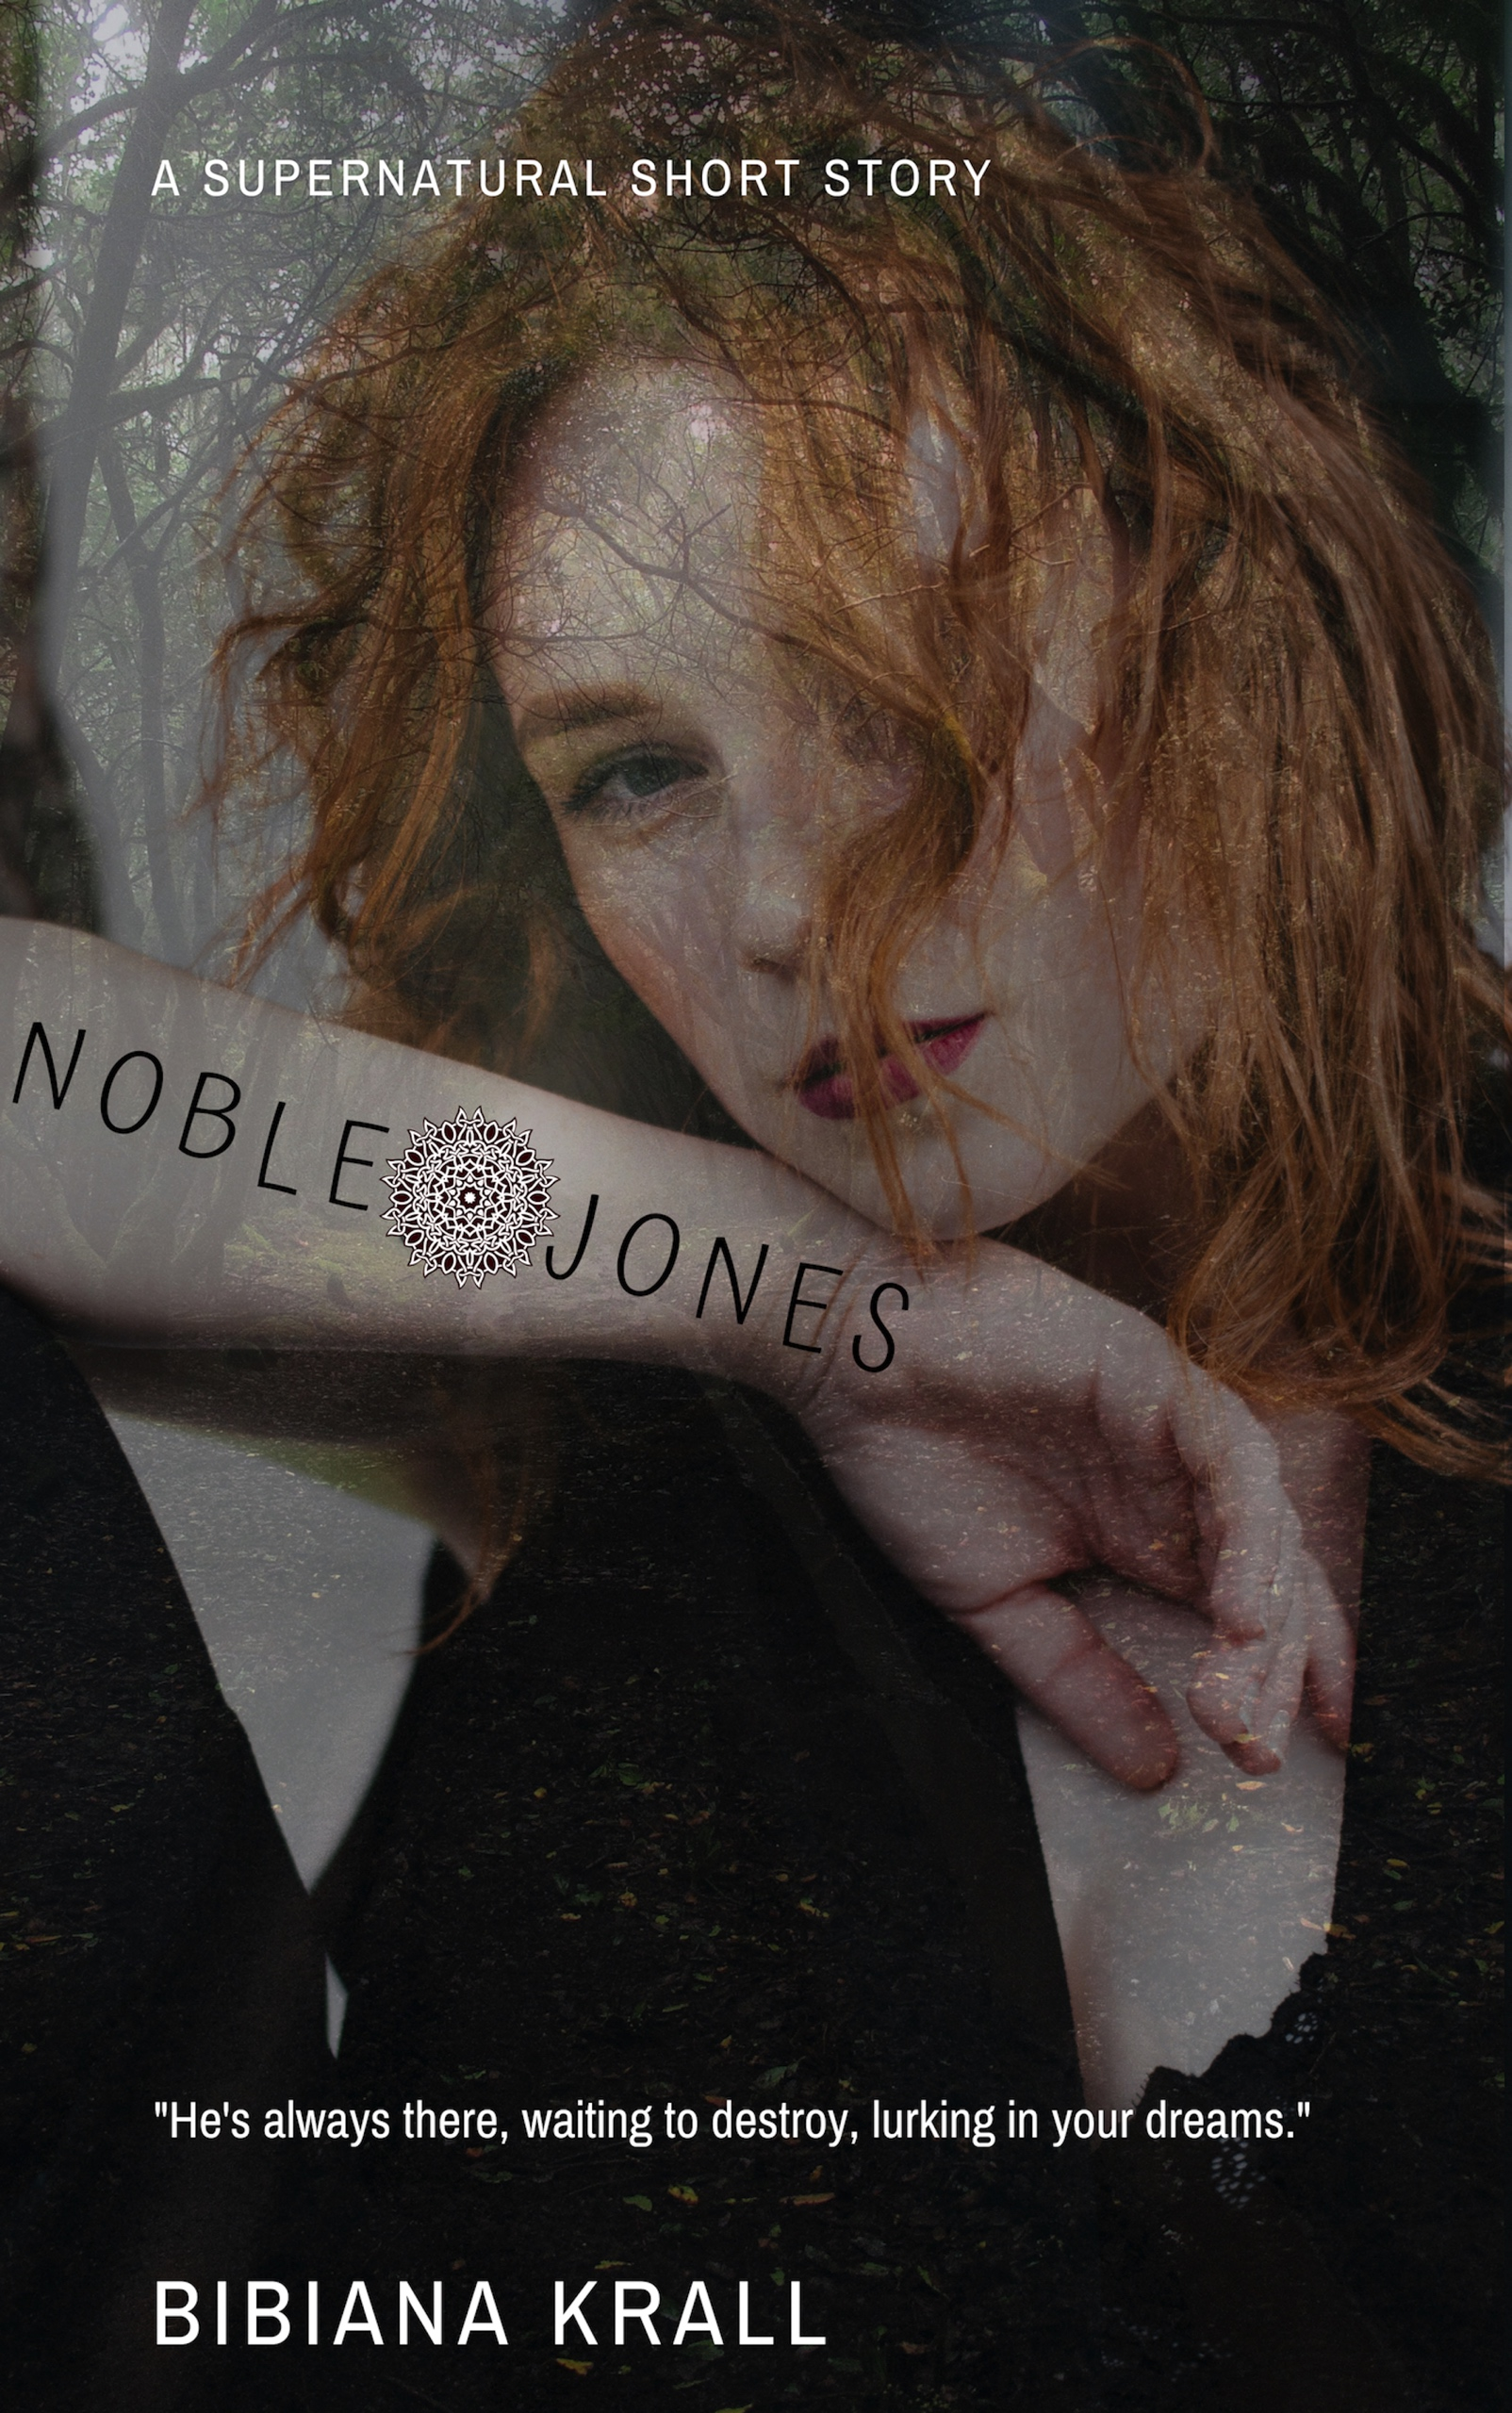 Noble Jones by Bibiana Krall